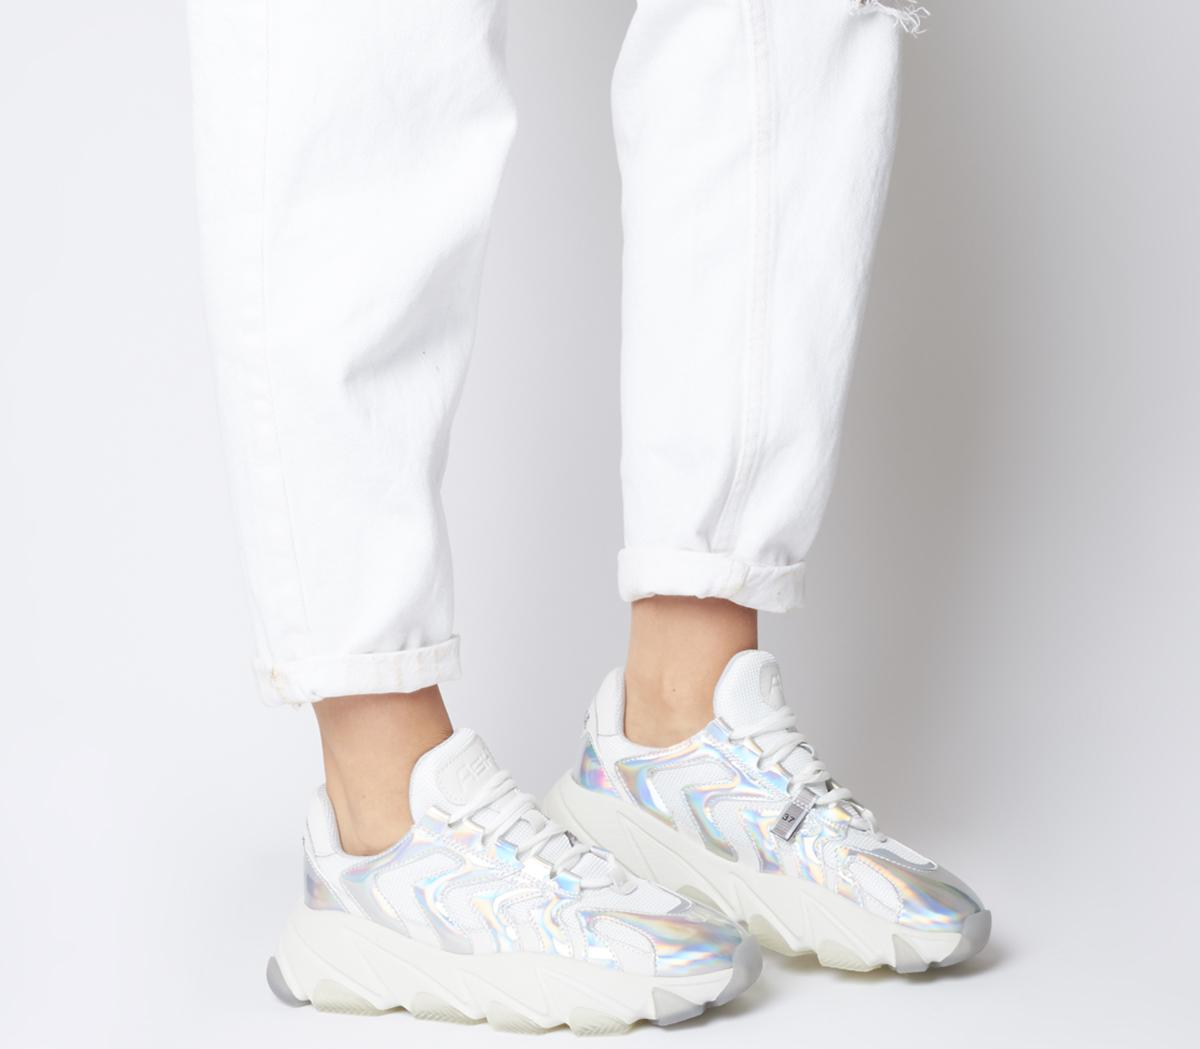 Ash Extreme Trainers Silver White - Flats